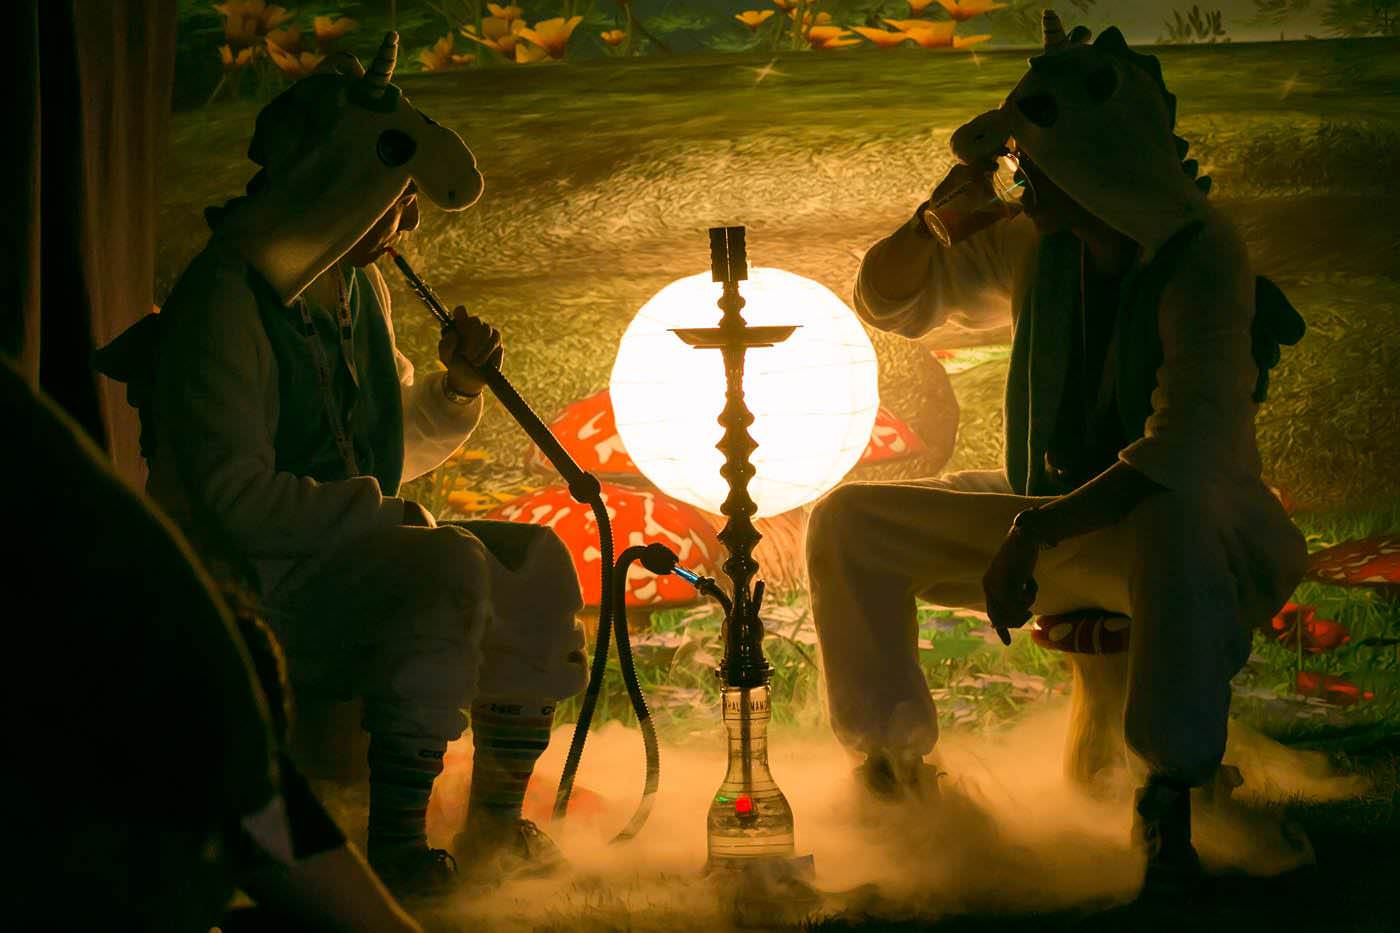 Electronic Shisha Hire Packages- Weddings, Corporate Events, Birthdays and House Parties in London, Oxford, Cambridge, Surrey & Kent